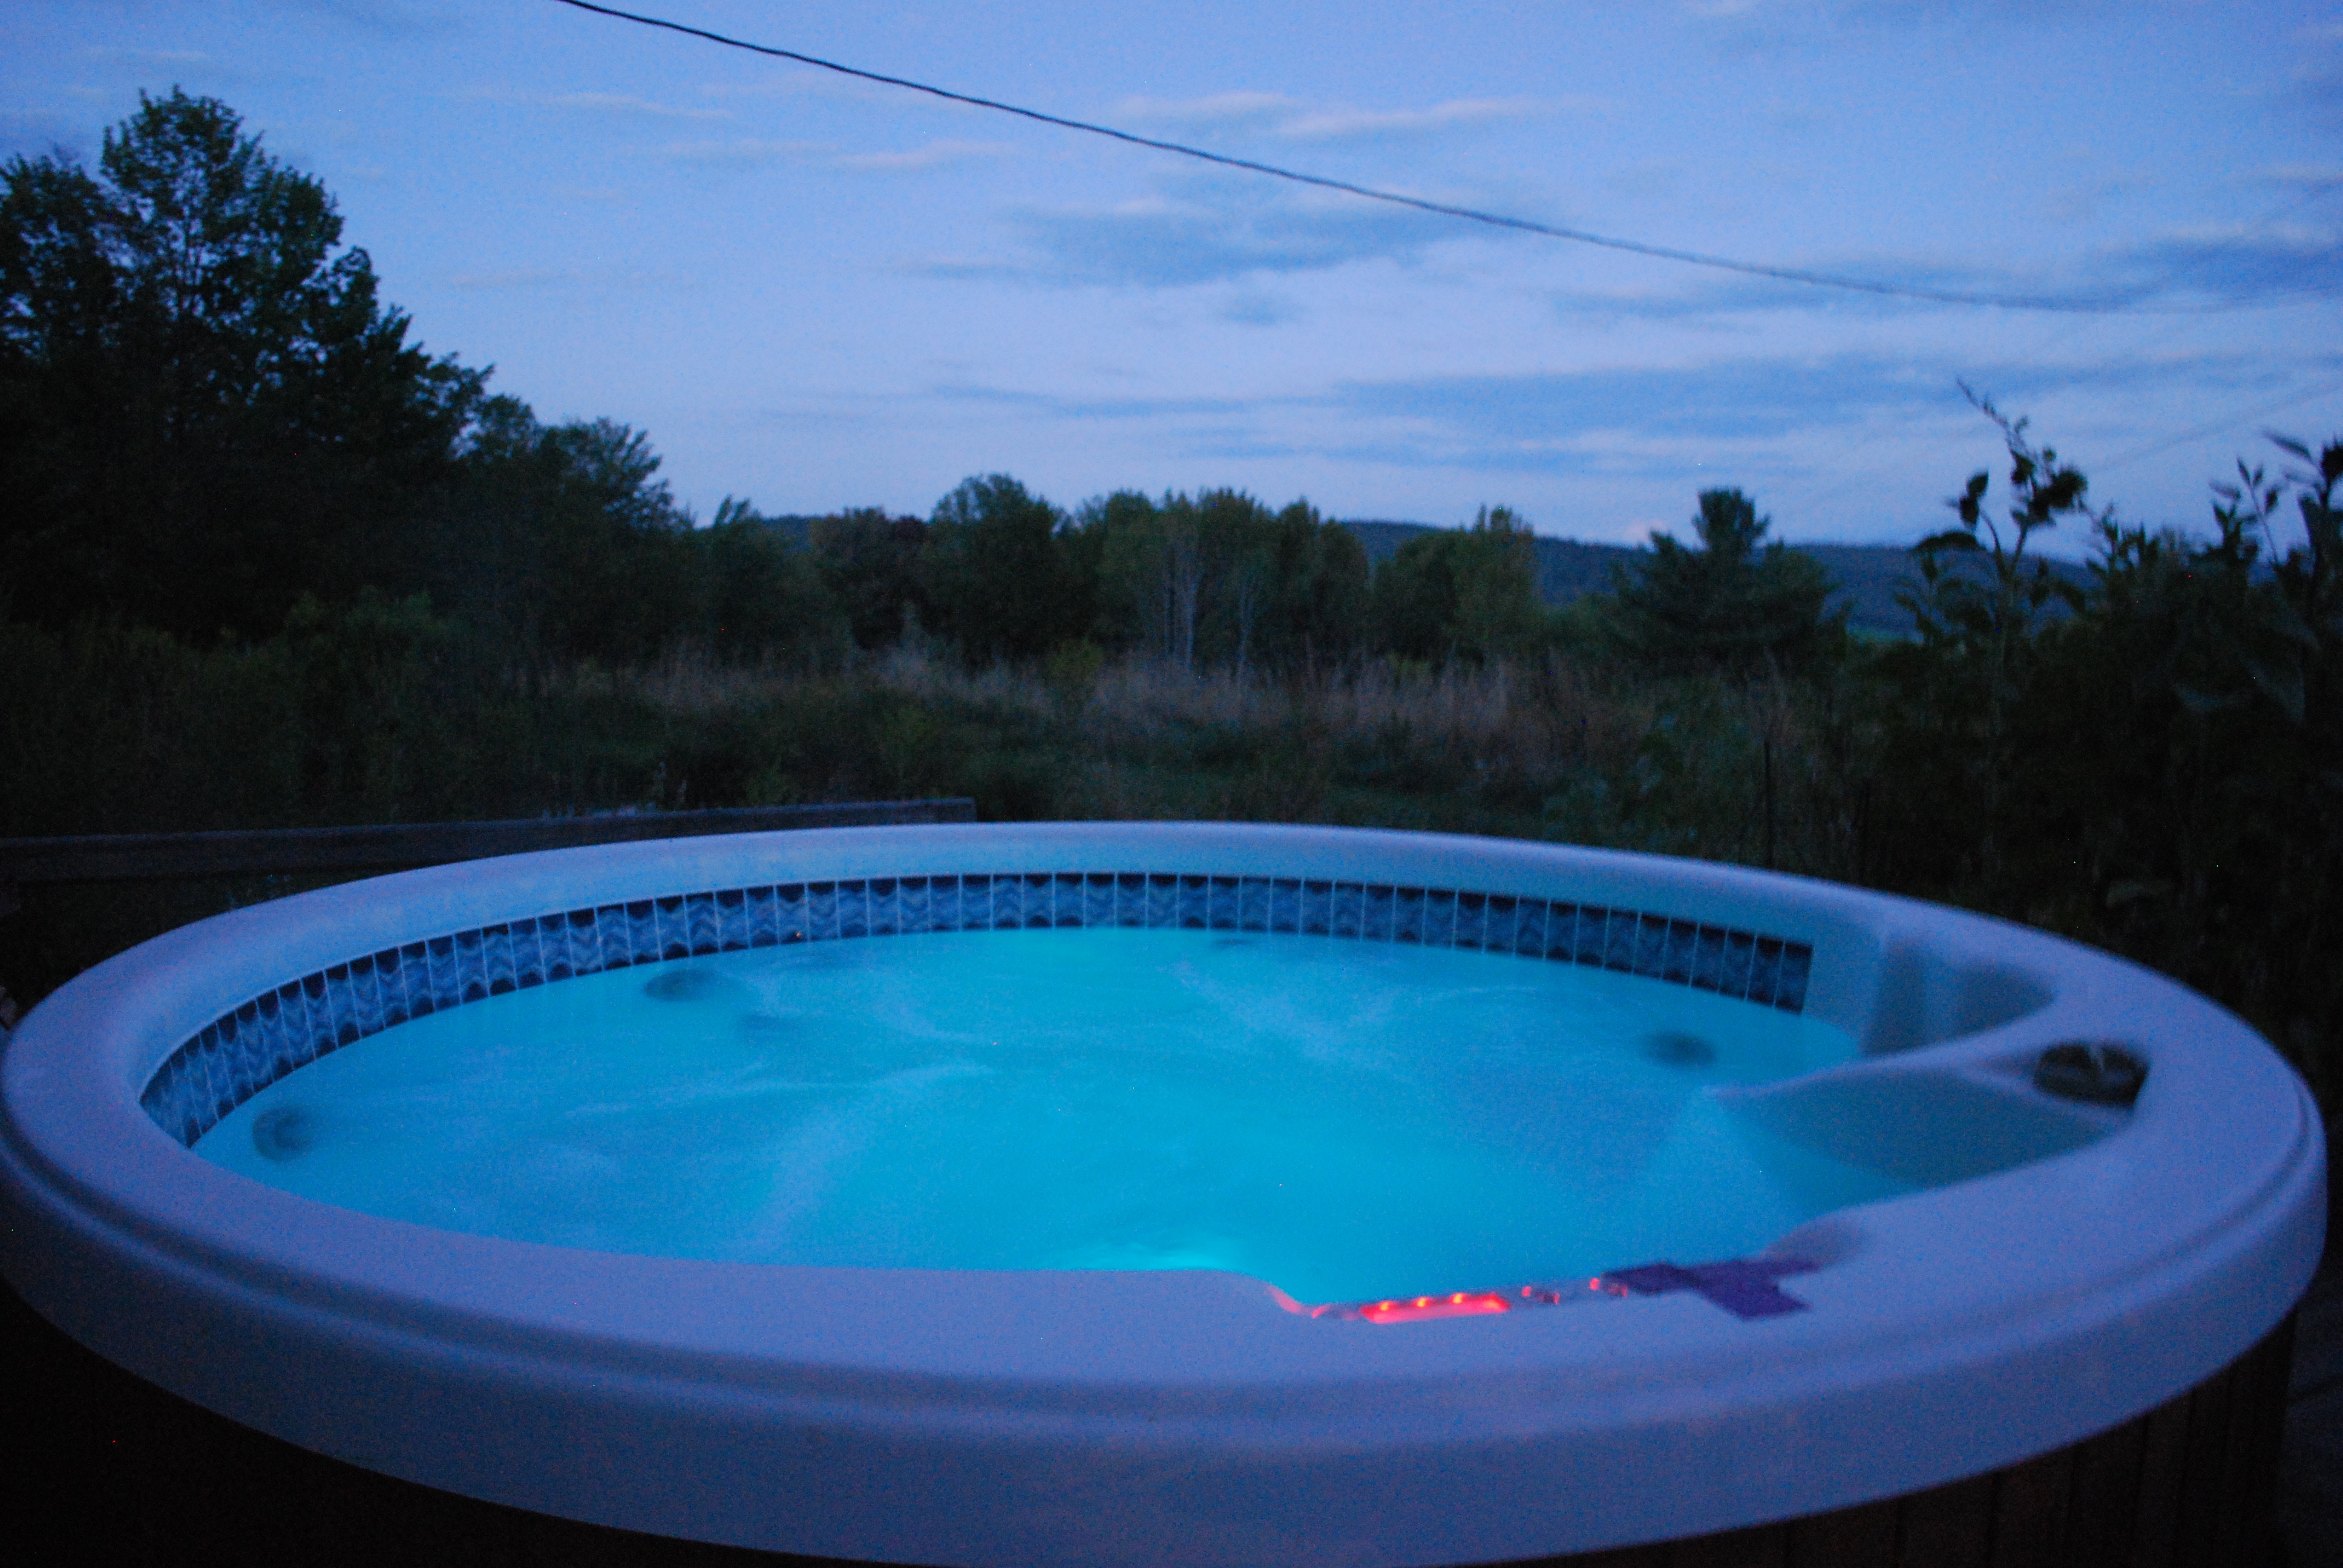 tub suite of inn prices the fireside best accommodations northern lights western hot